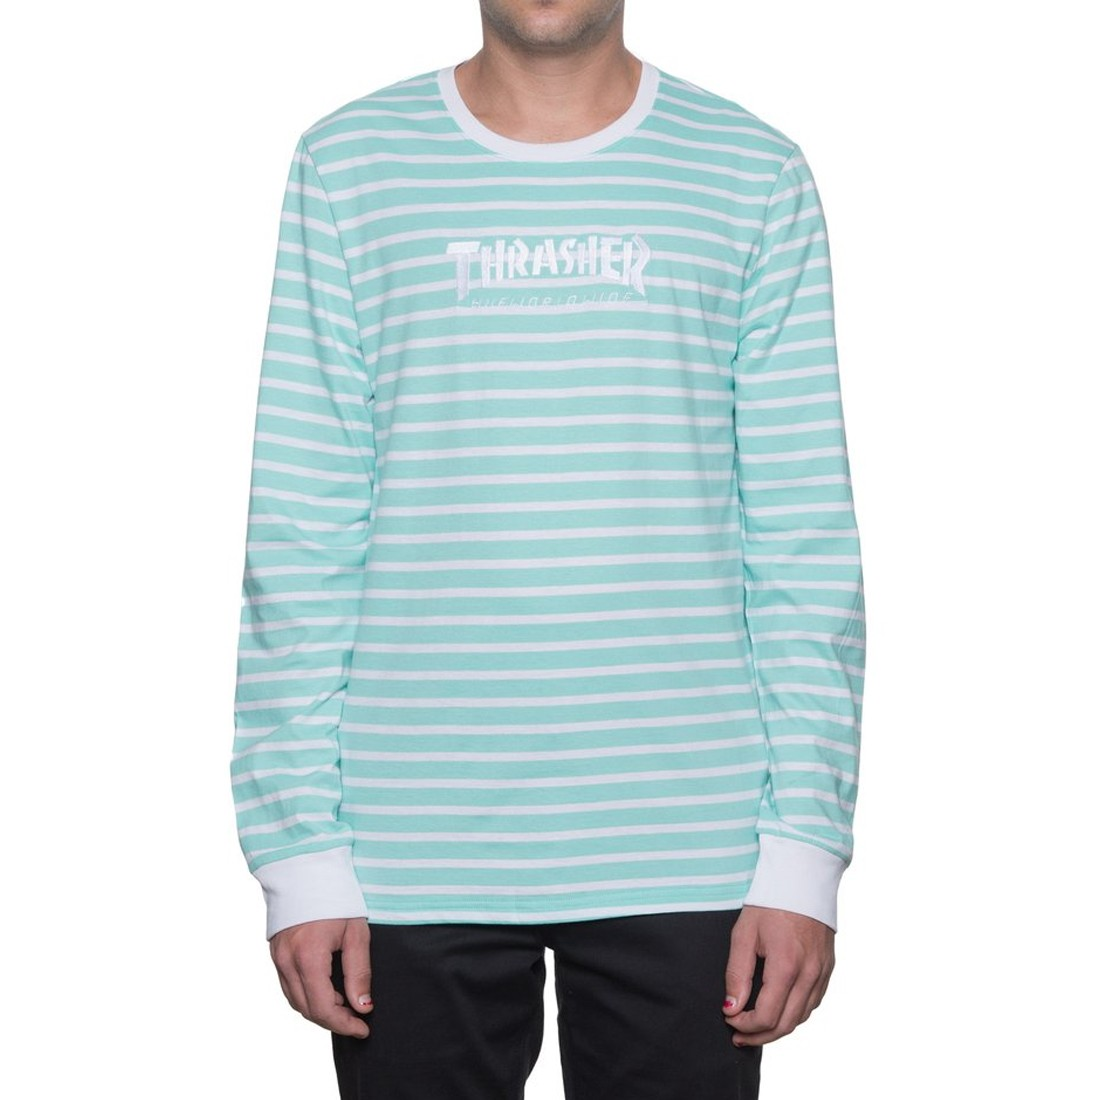 huf-x-thrasher-tour-de-stoops-stripe-crew-sweatshirt-mint-1.1506776432.jpg bc3fb3160